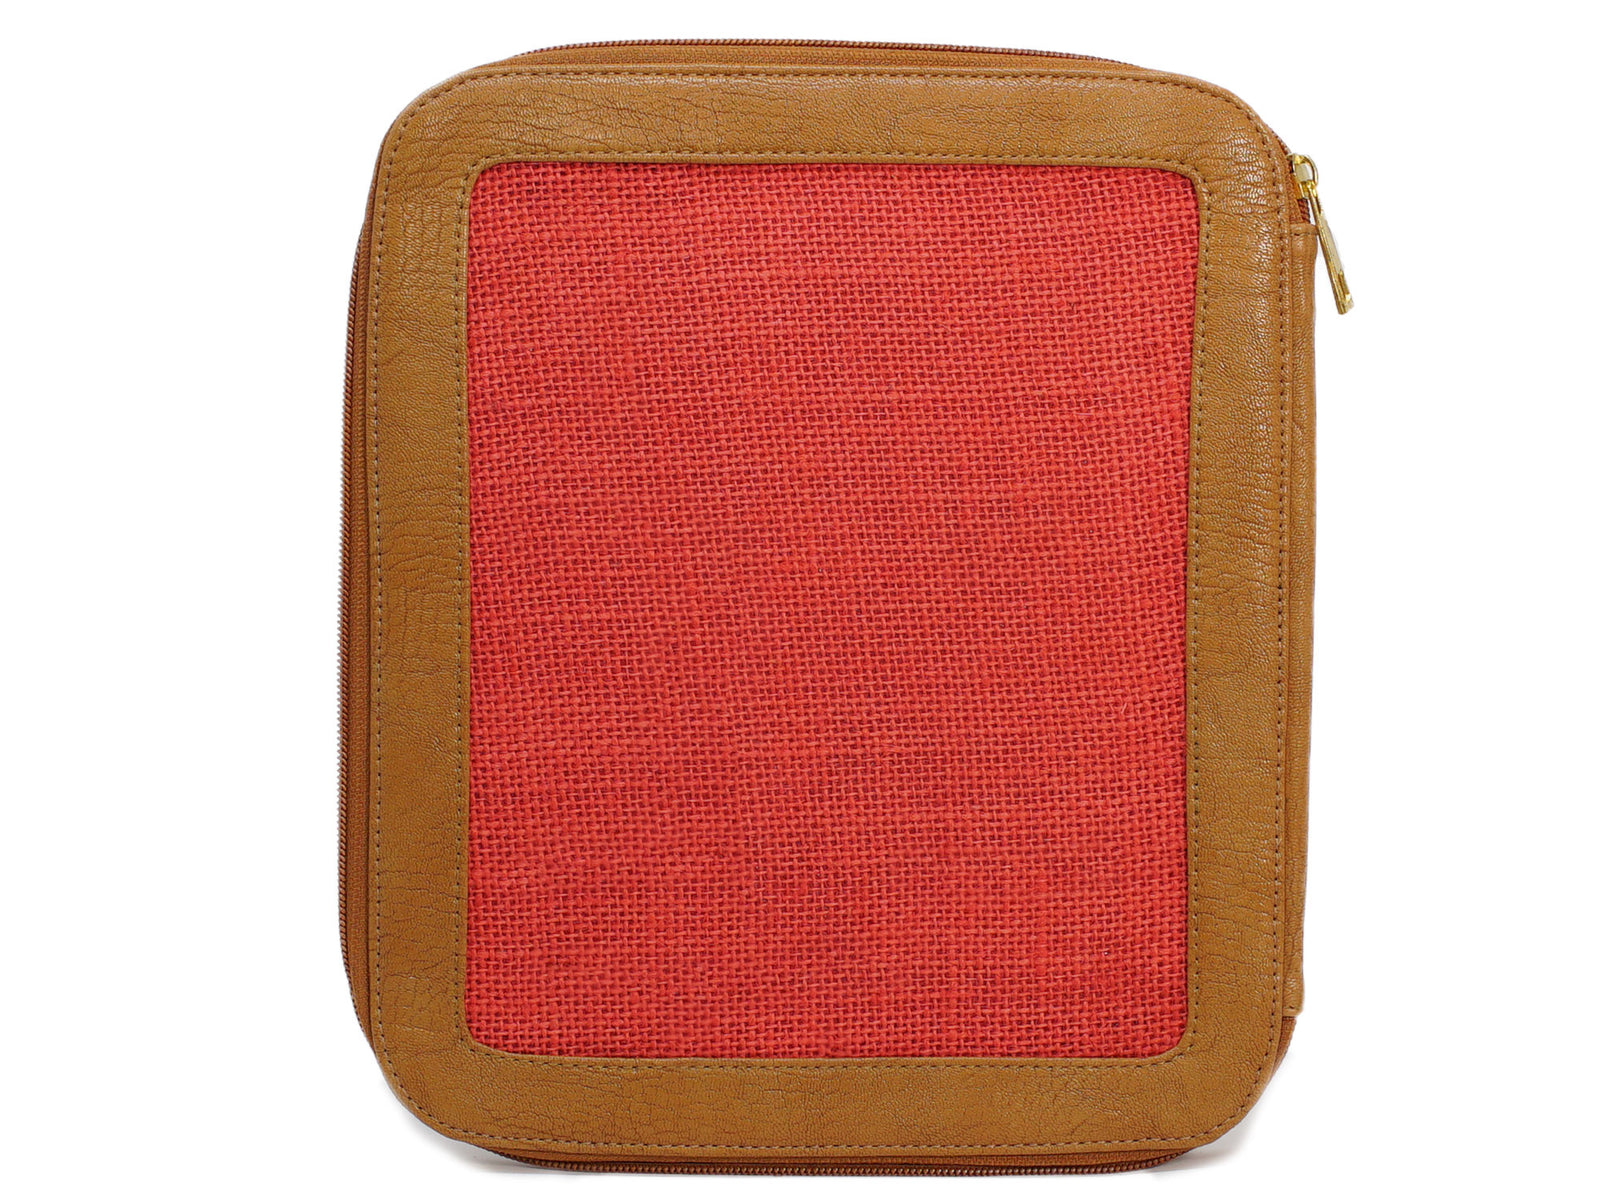 Bessa Tablet Cover